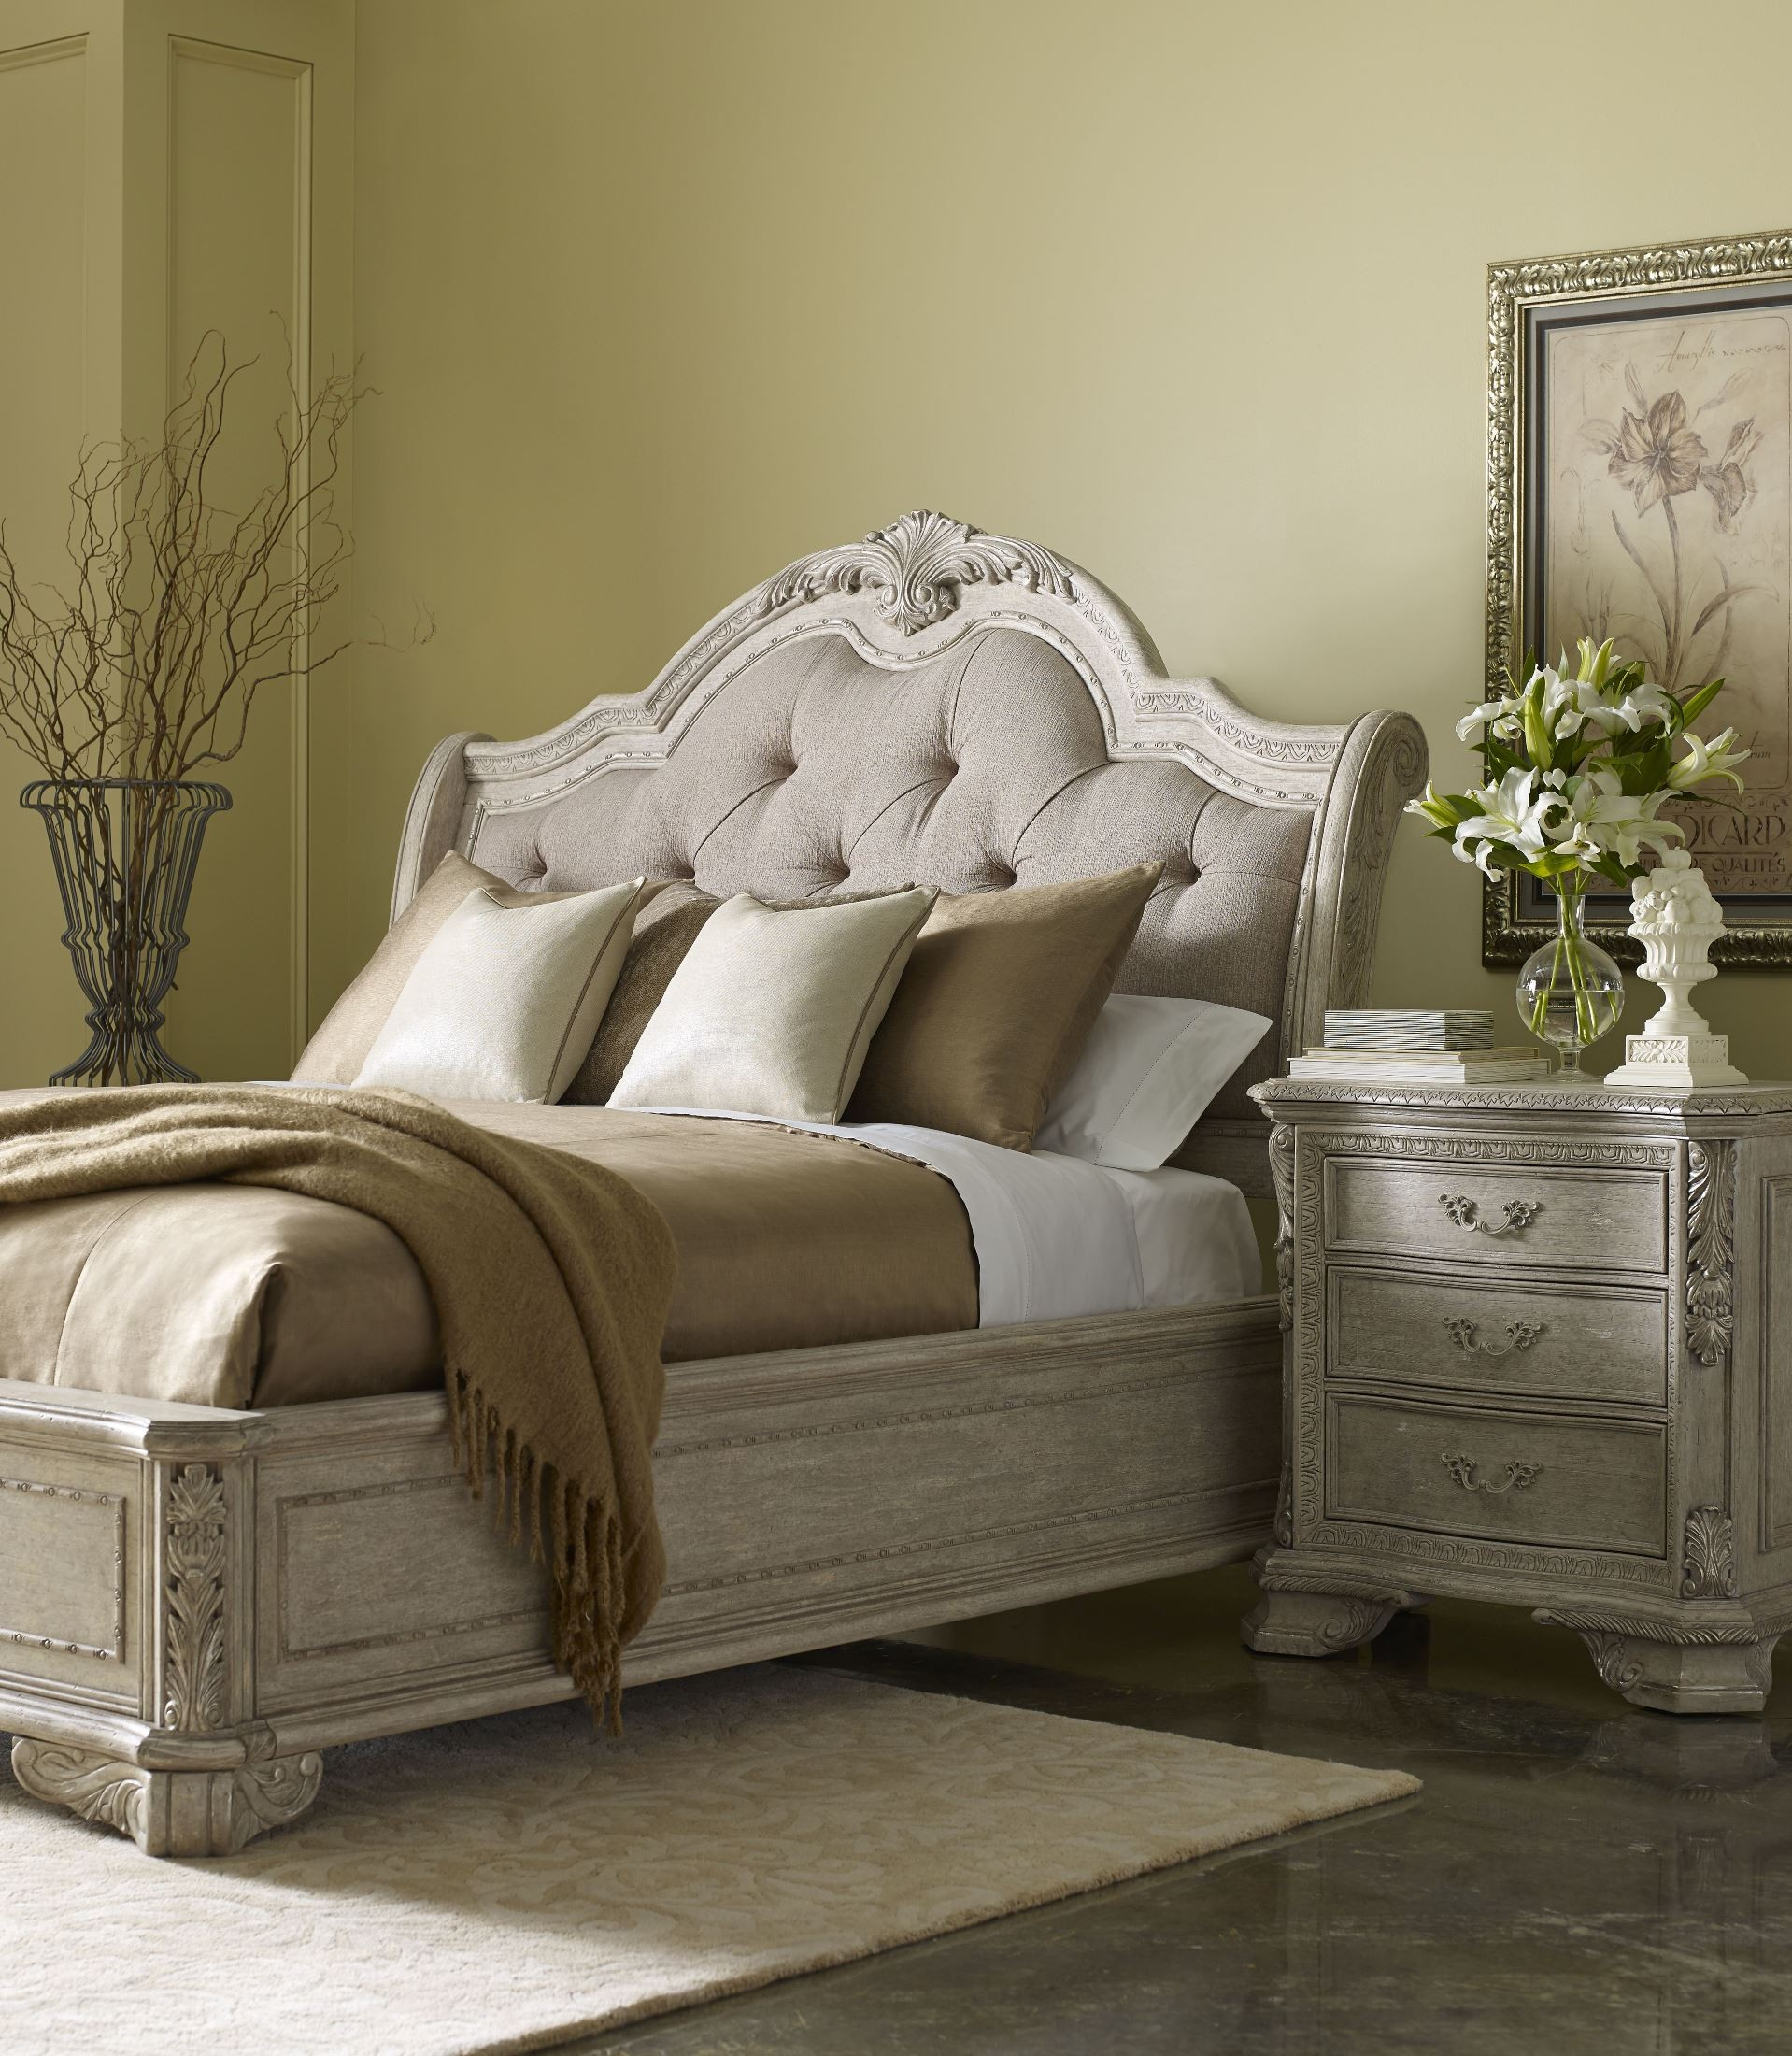 Renaissance Dove Grey Sleigh Upholstered Bedroom Set From